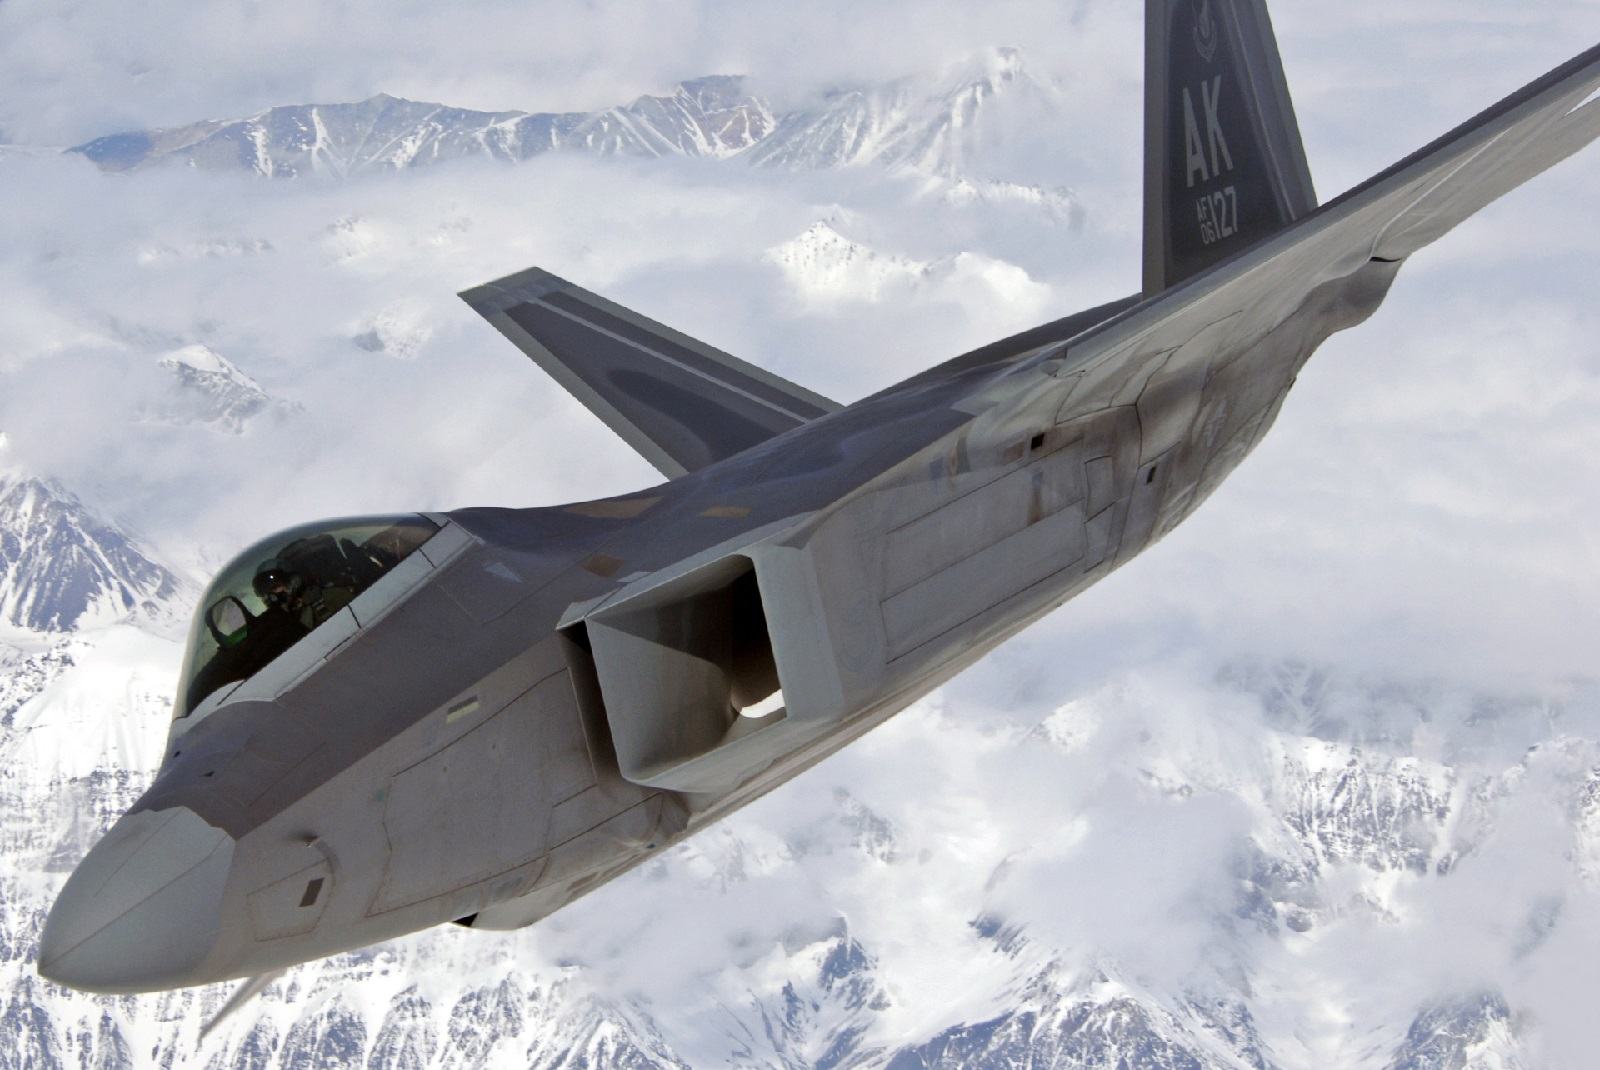 Quantum Radars: China's New Weapon to Take Out U.S. Stealth Fighters (Like the F-22)?